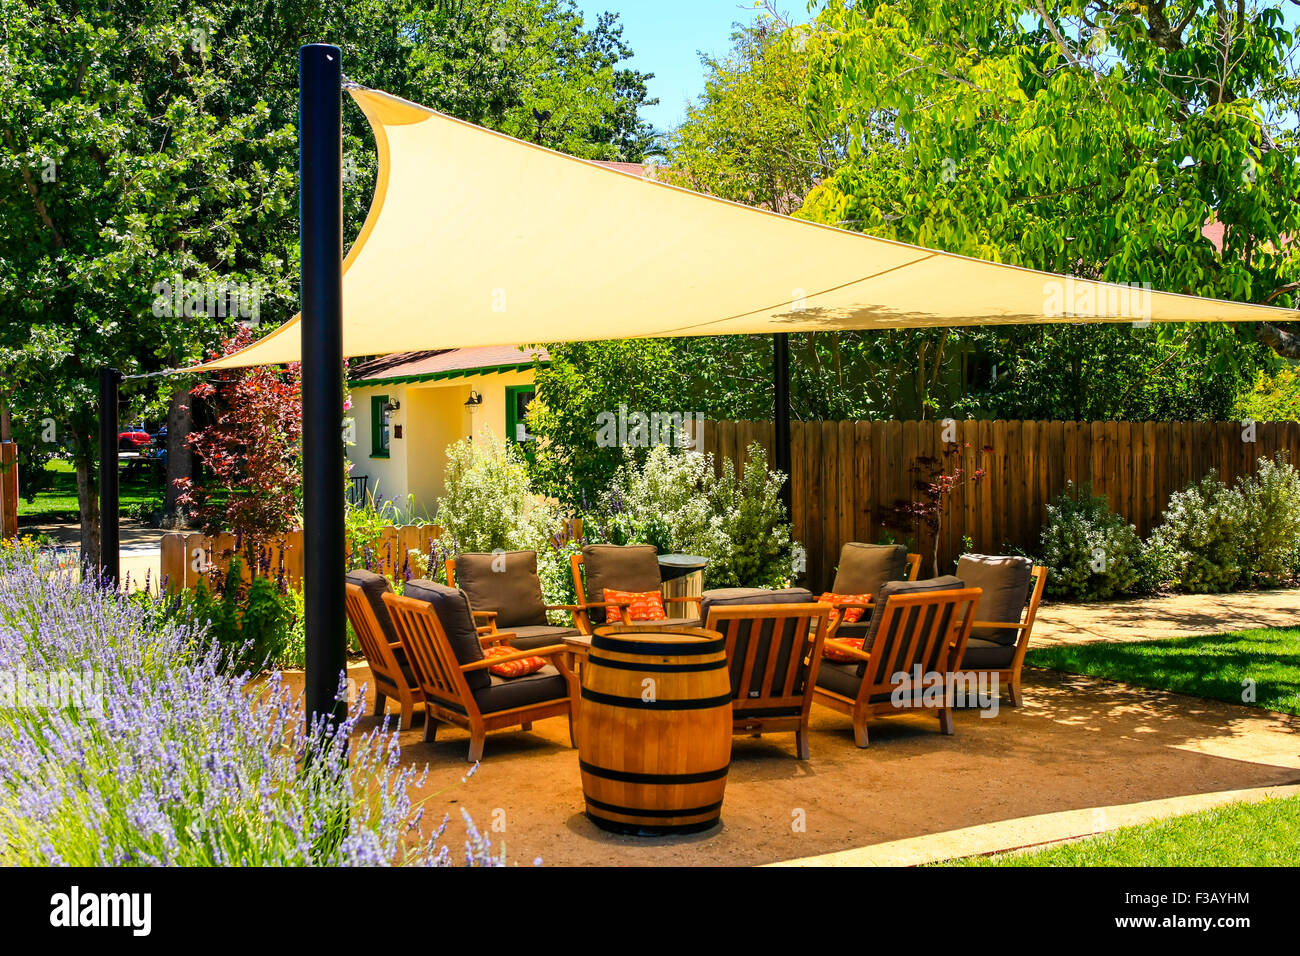 Genial A Covered Garden Deck With Chairs And Throw Pillows In California   Stock  Image